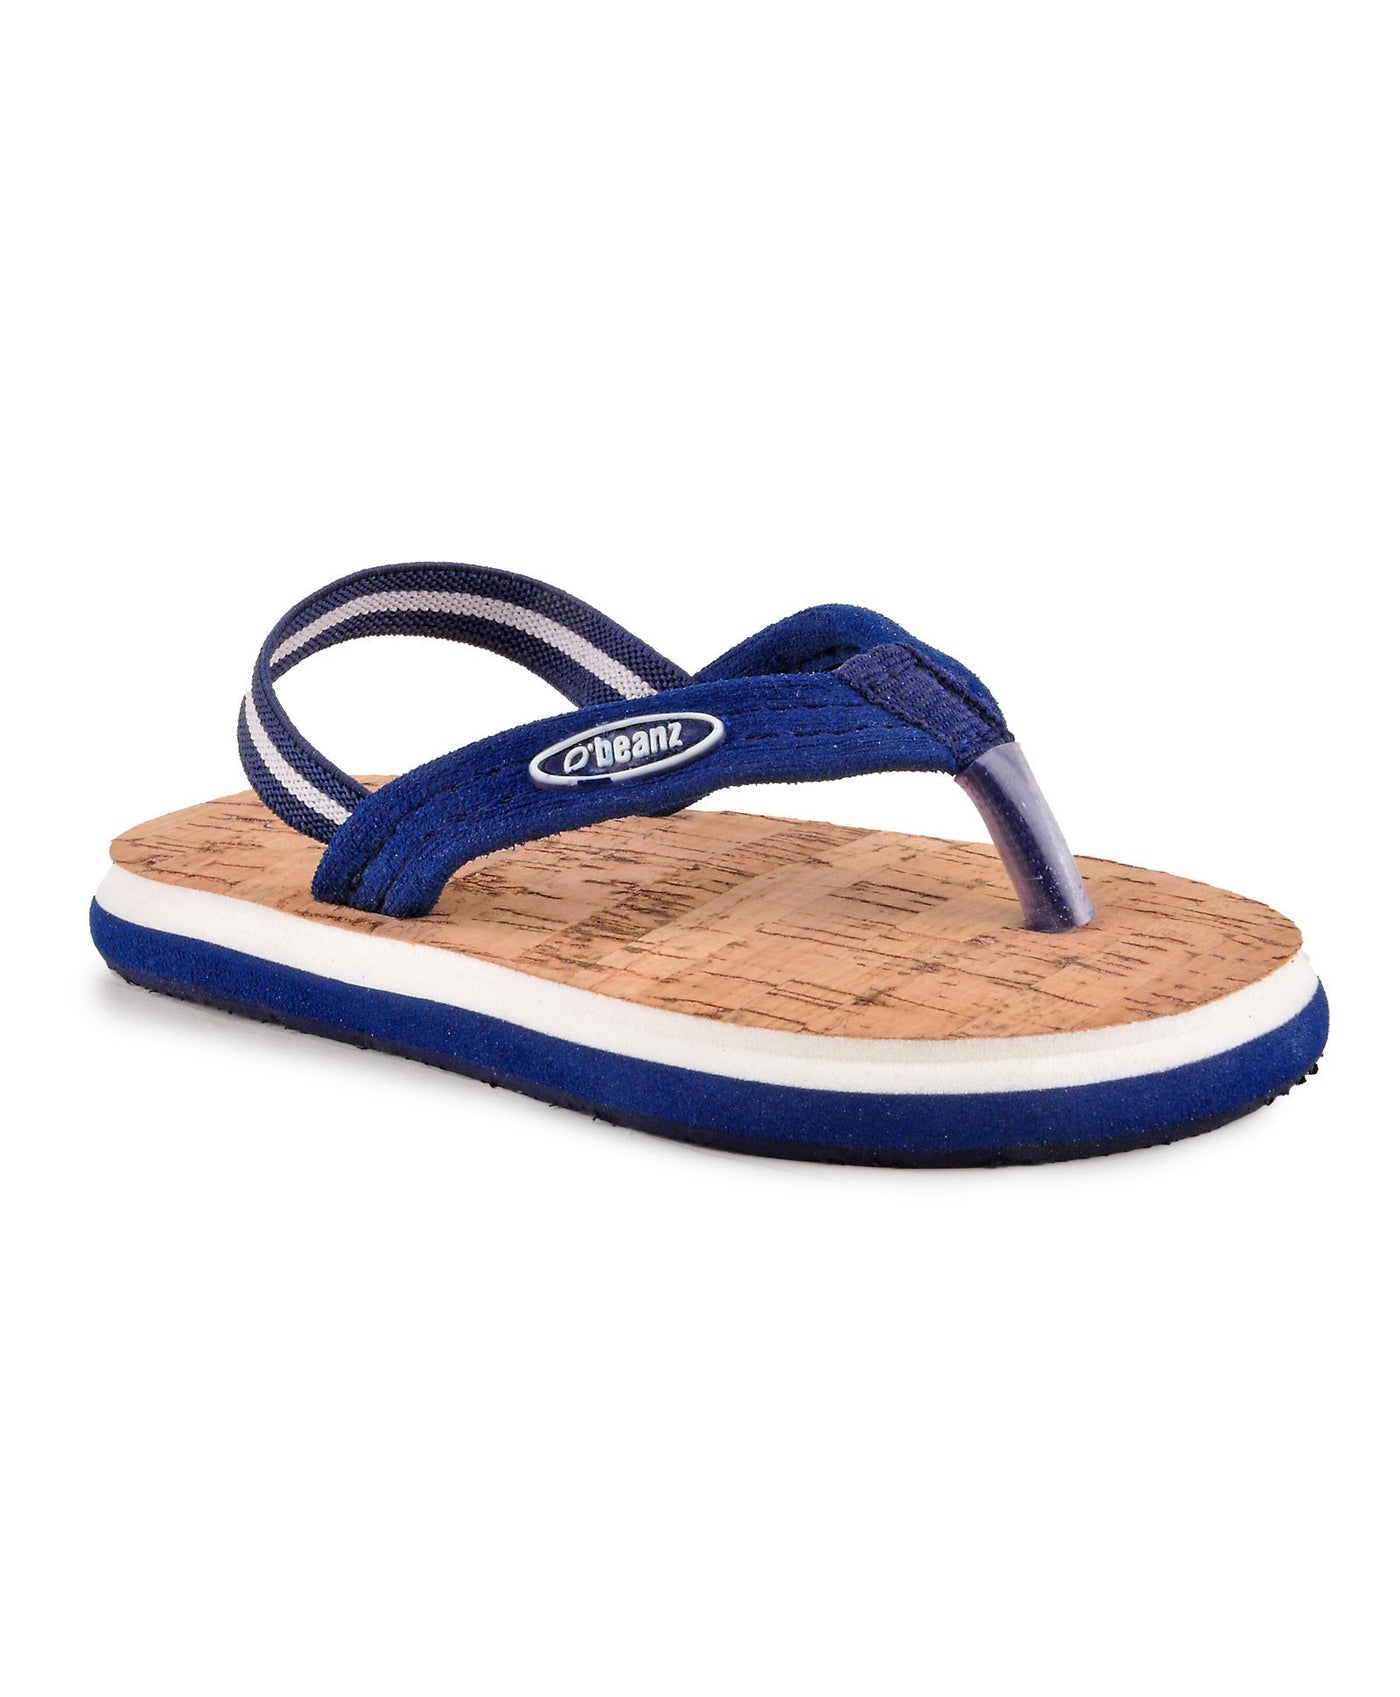 3dac0cbdb Beanz Domnic Navy Blue and Sand Brown Flip Flops With Back Strap – Munchkinz